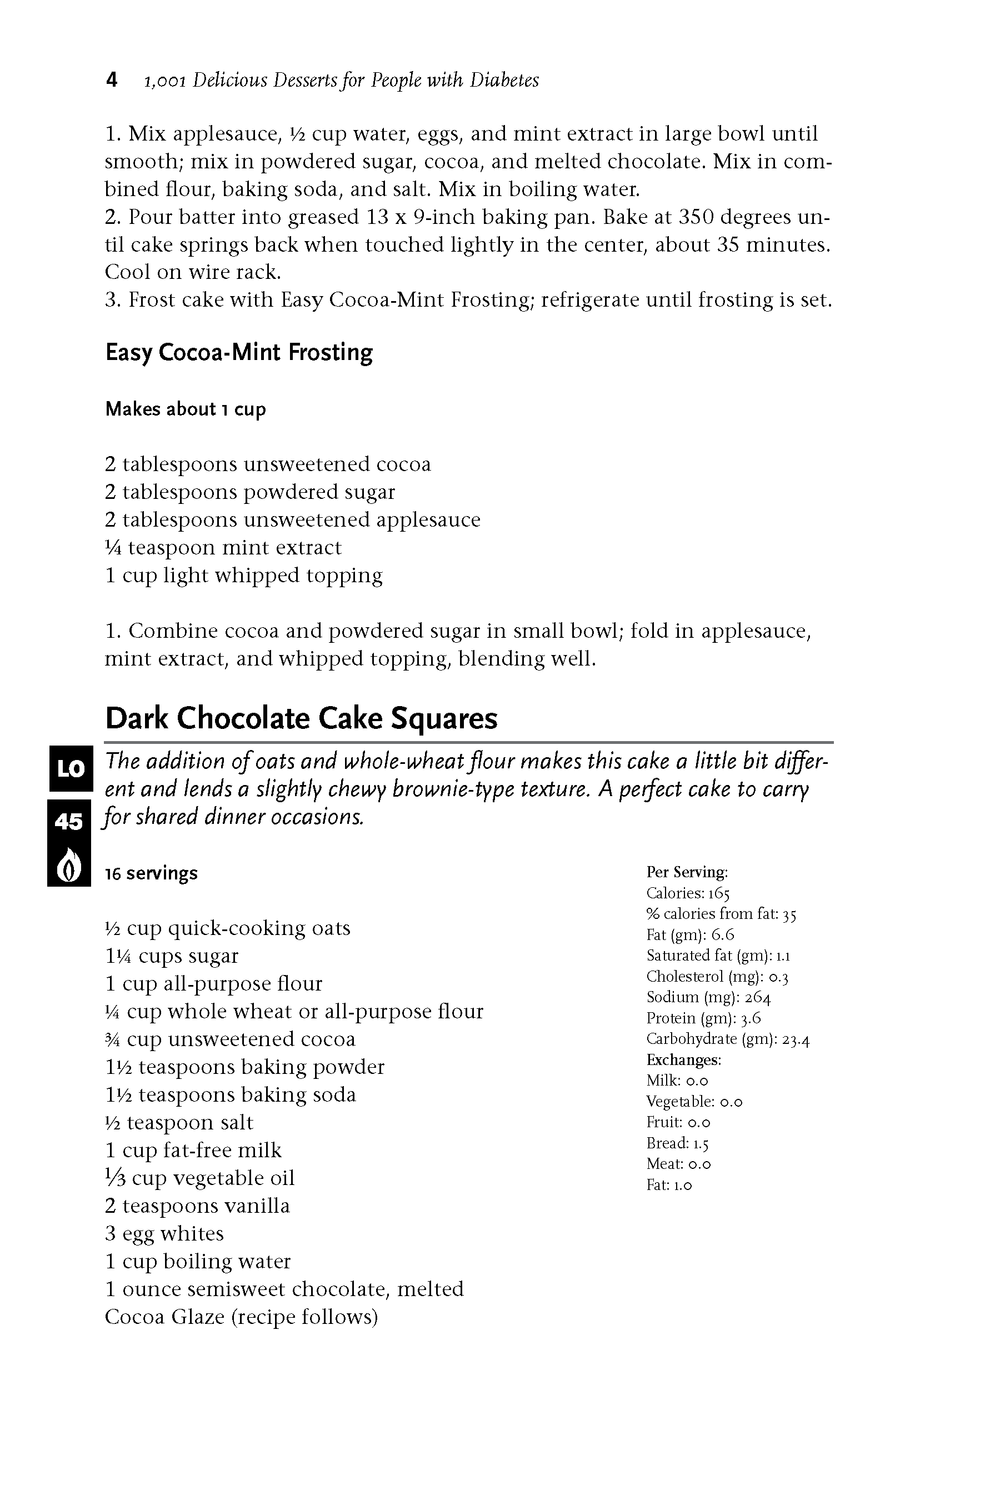 1,001 Delicious Desserts for People with Diabetes_Page_06.png